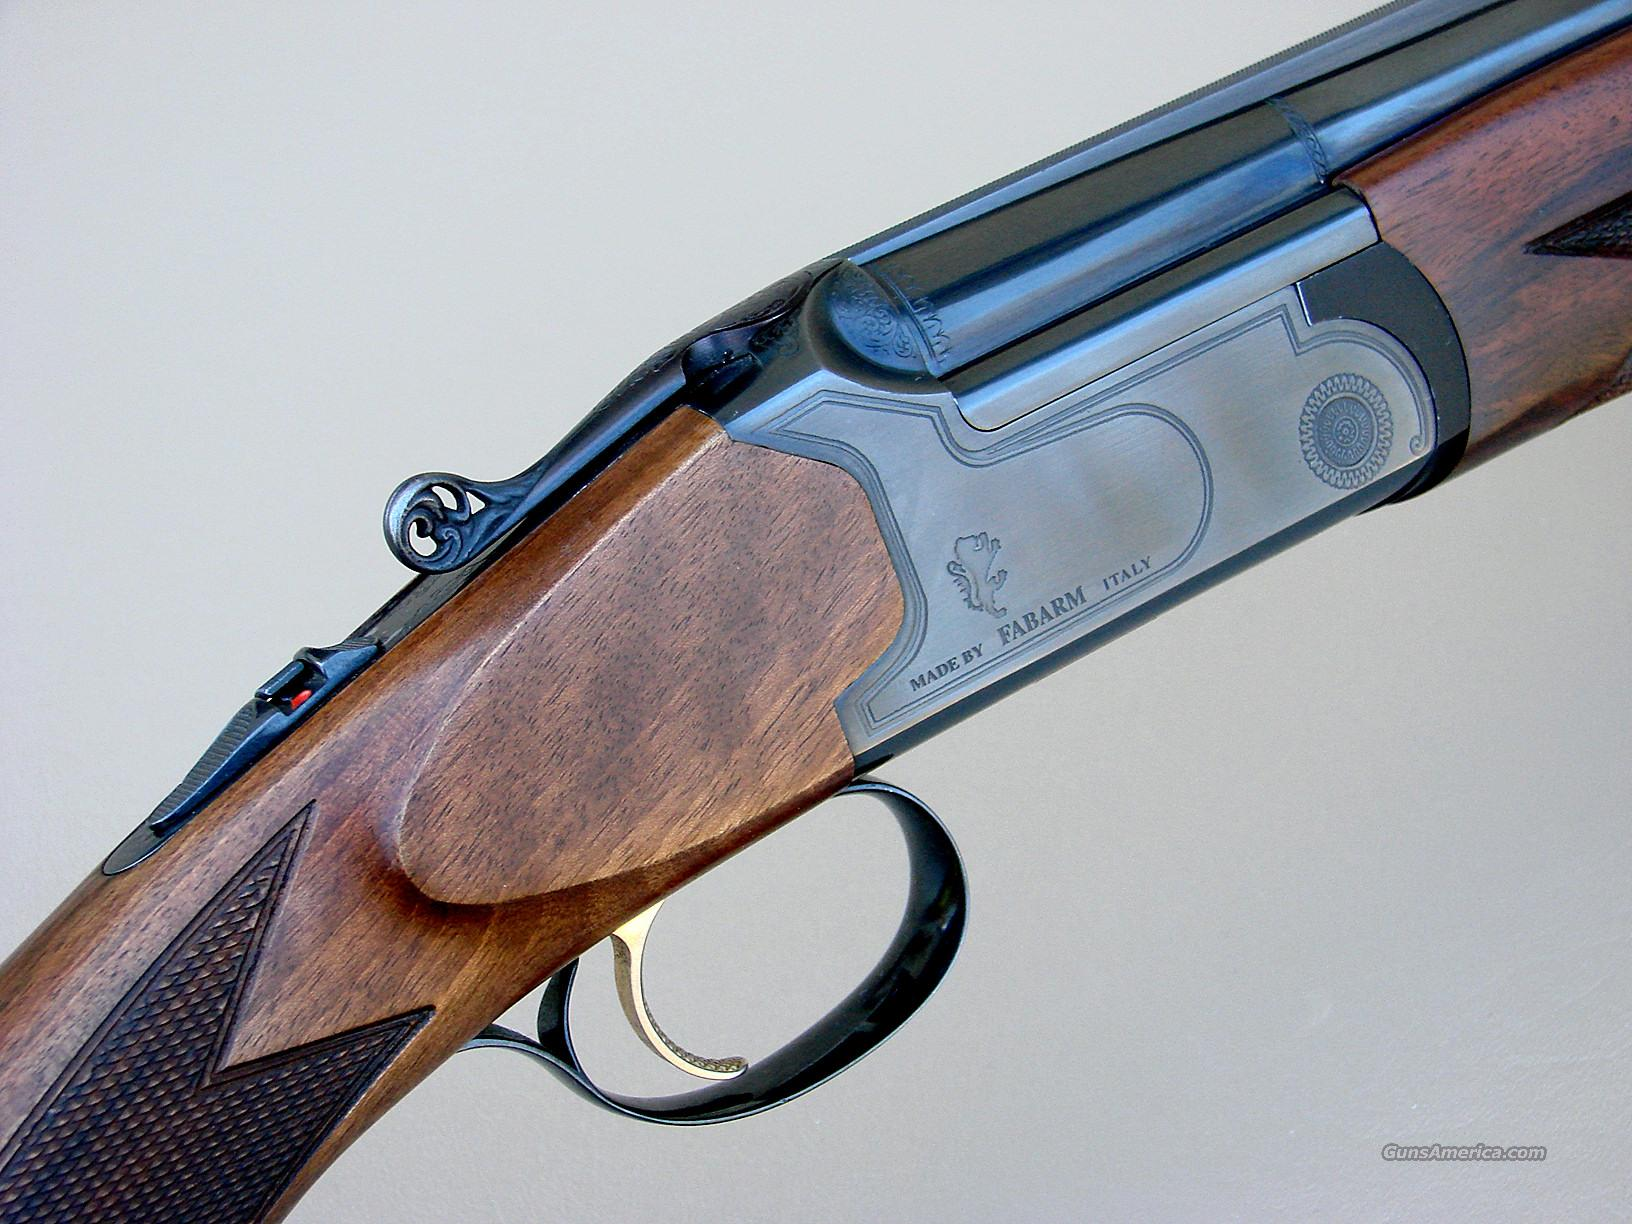 FABARM 20 Gauge Over Under Shotgun  Guns > Shotguns > Fabarm (HK) Shotguns